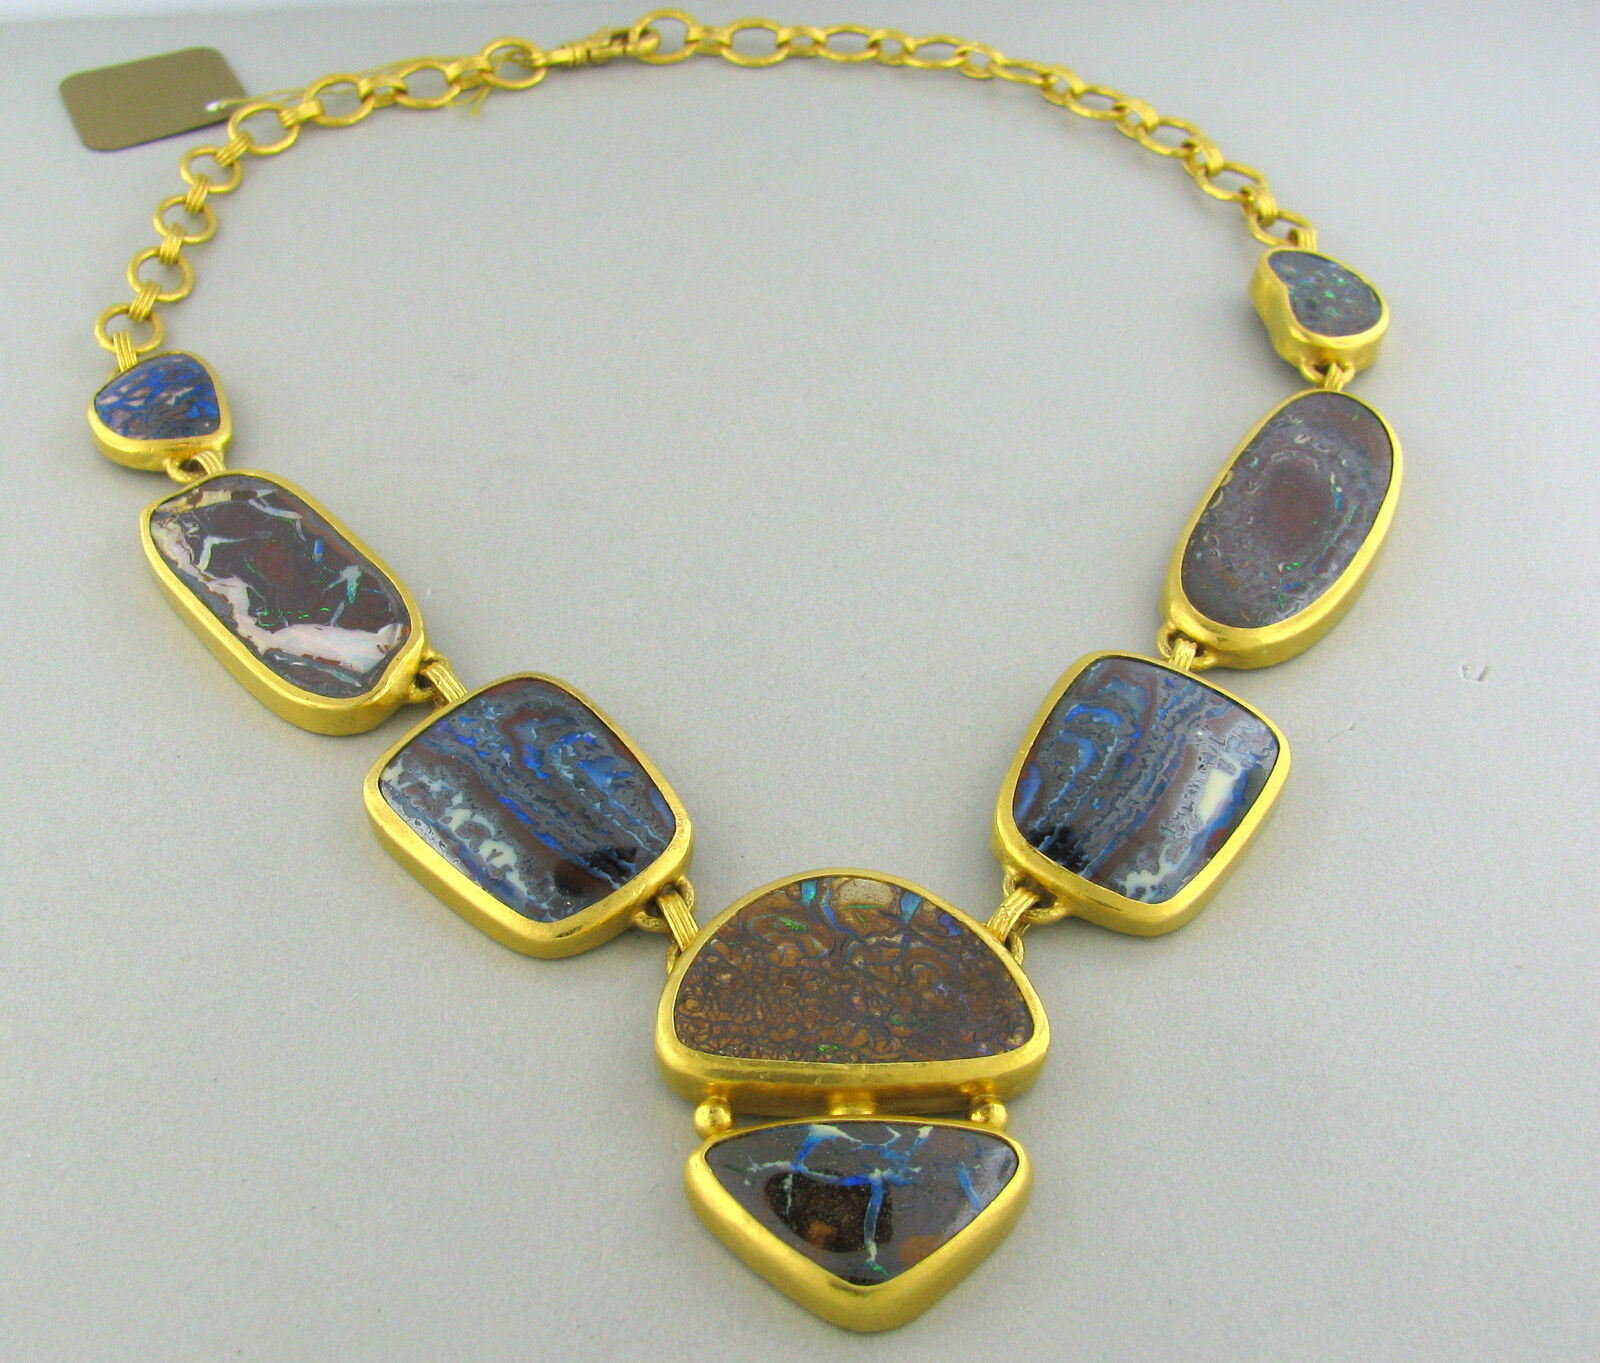 New gurhan quilpie 24k gold 175ct boulder opal necklace ebay for Jewelry stores boulder co